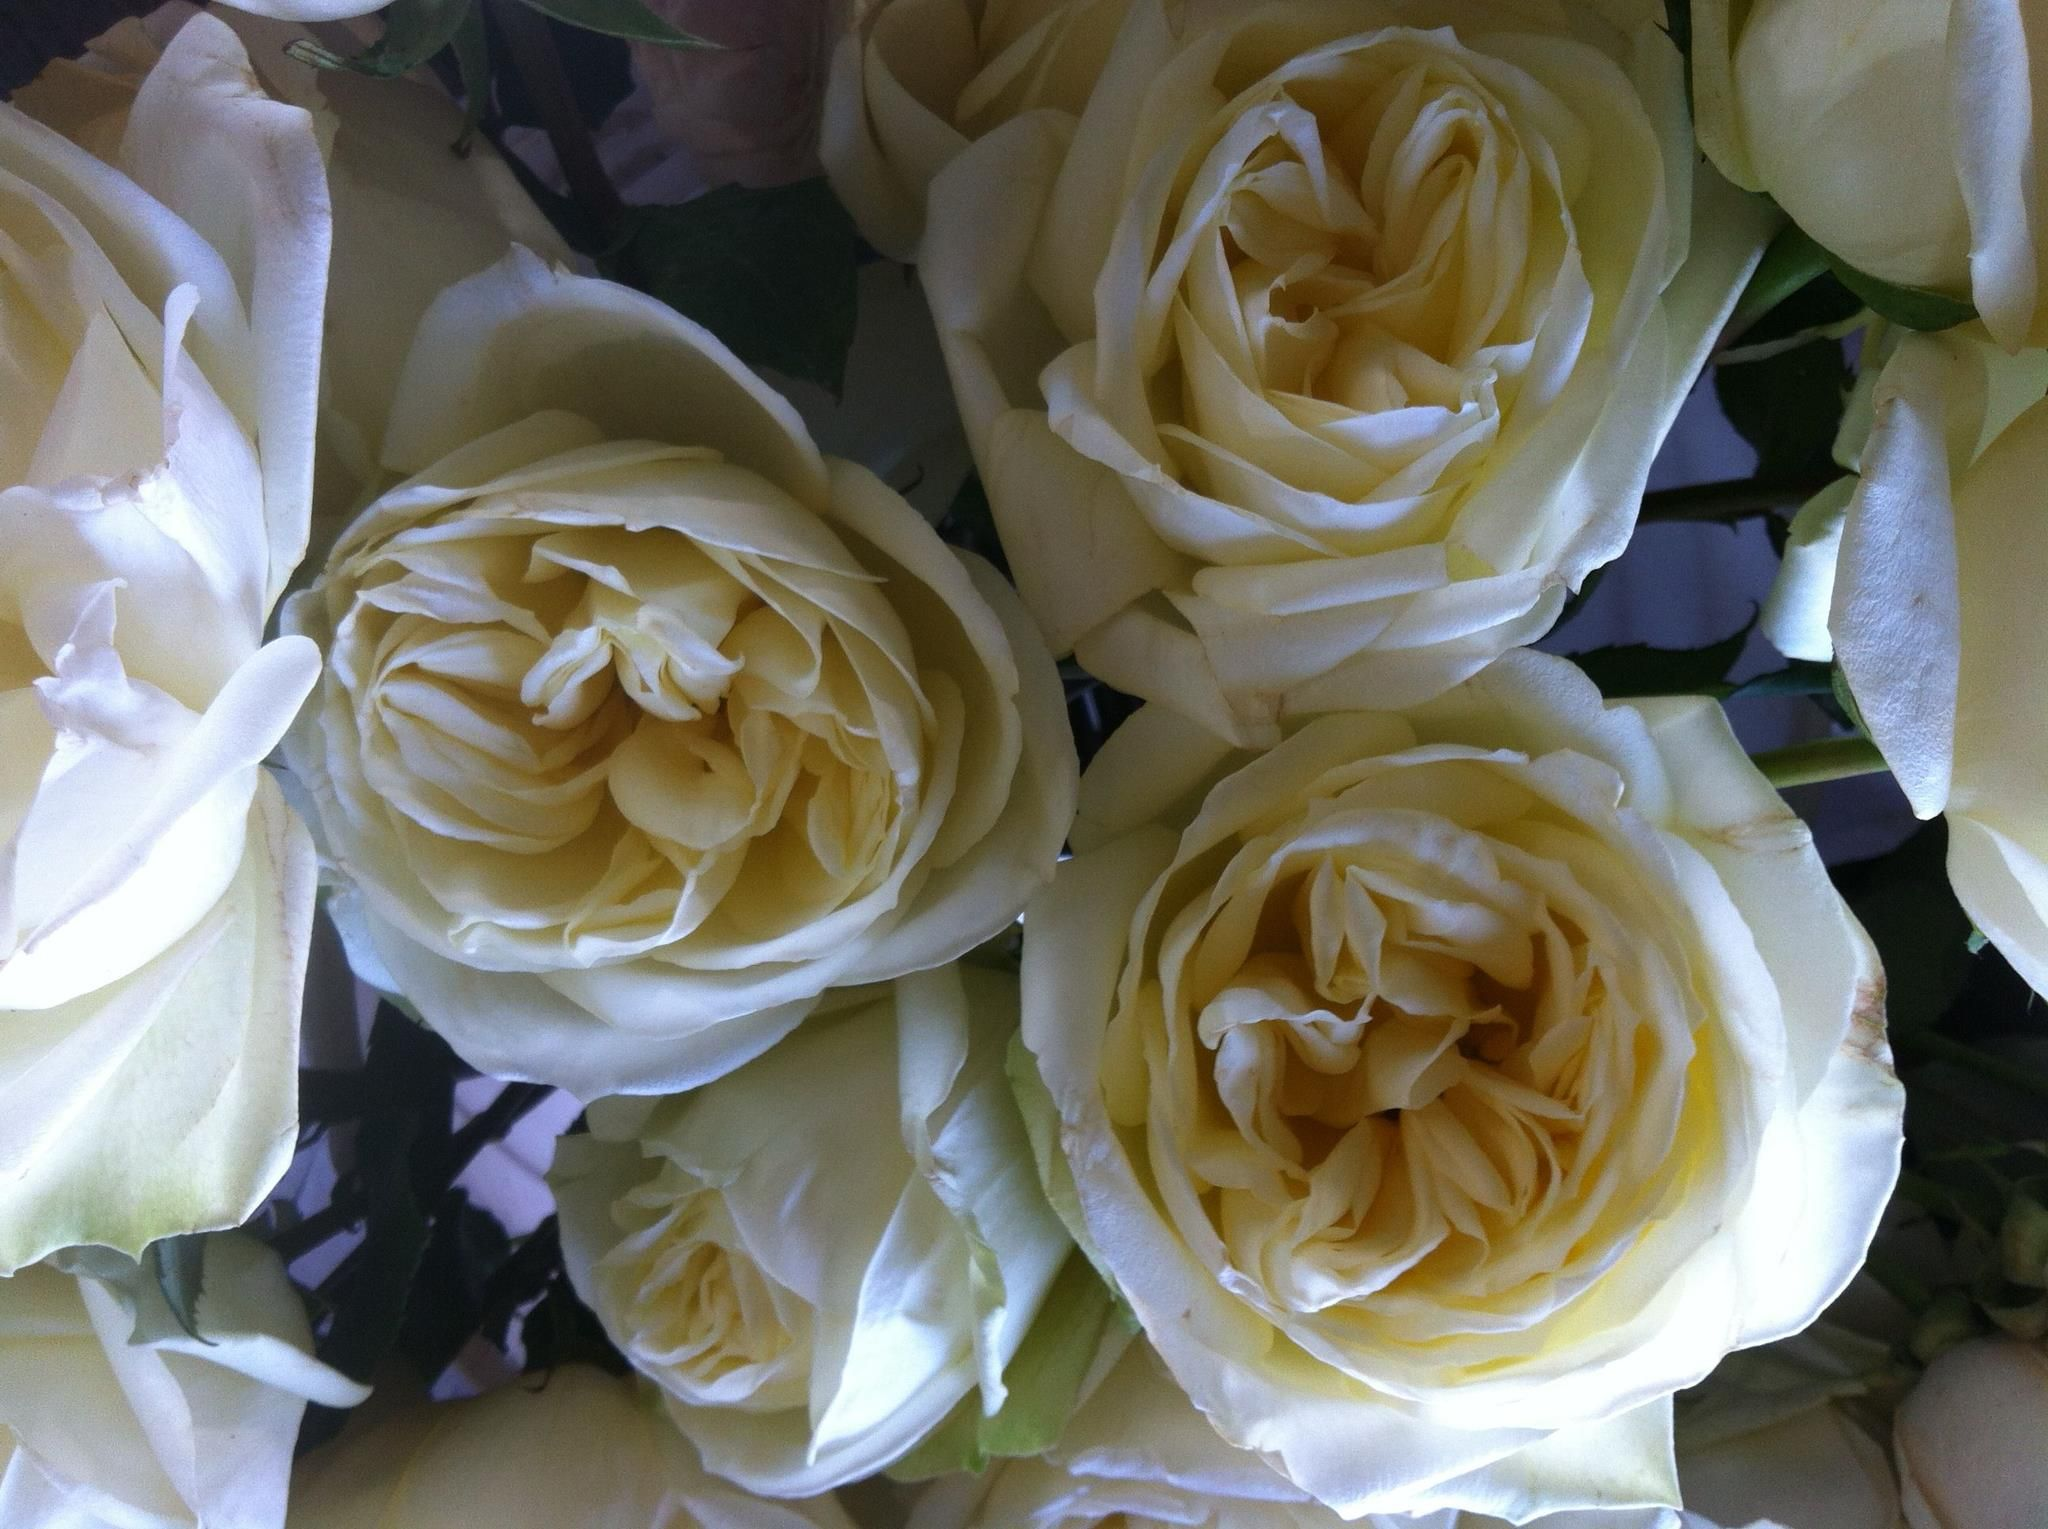 Love Garden Roses: White Polo Roses, South American Rose That Opens To Look